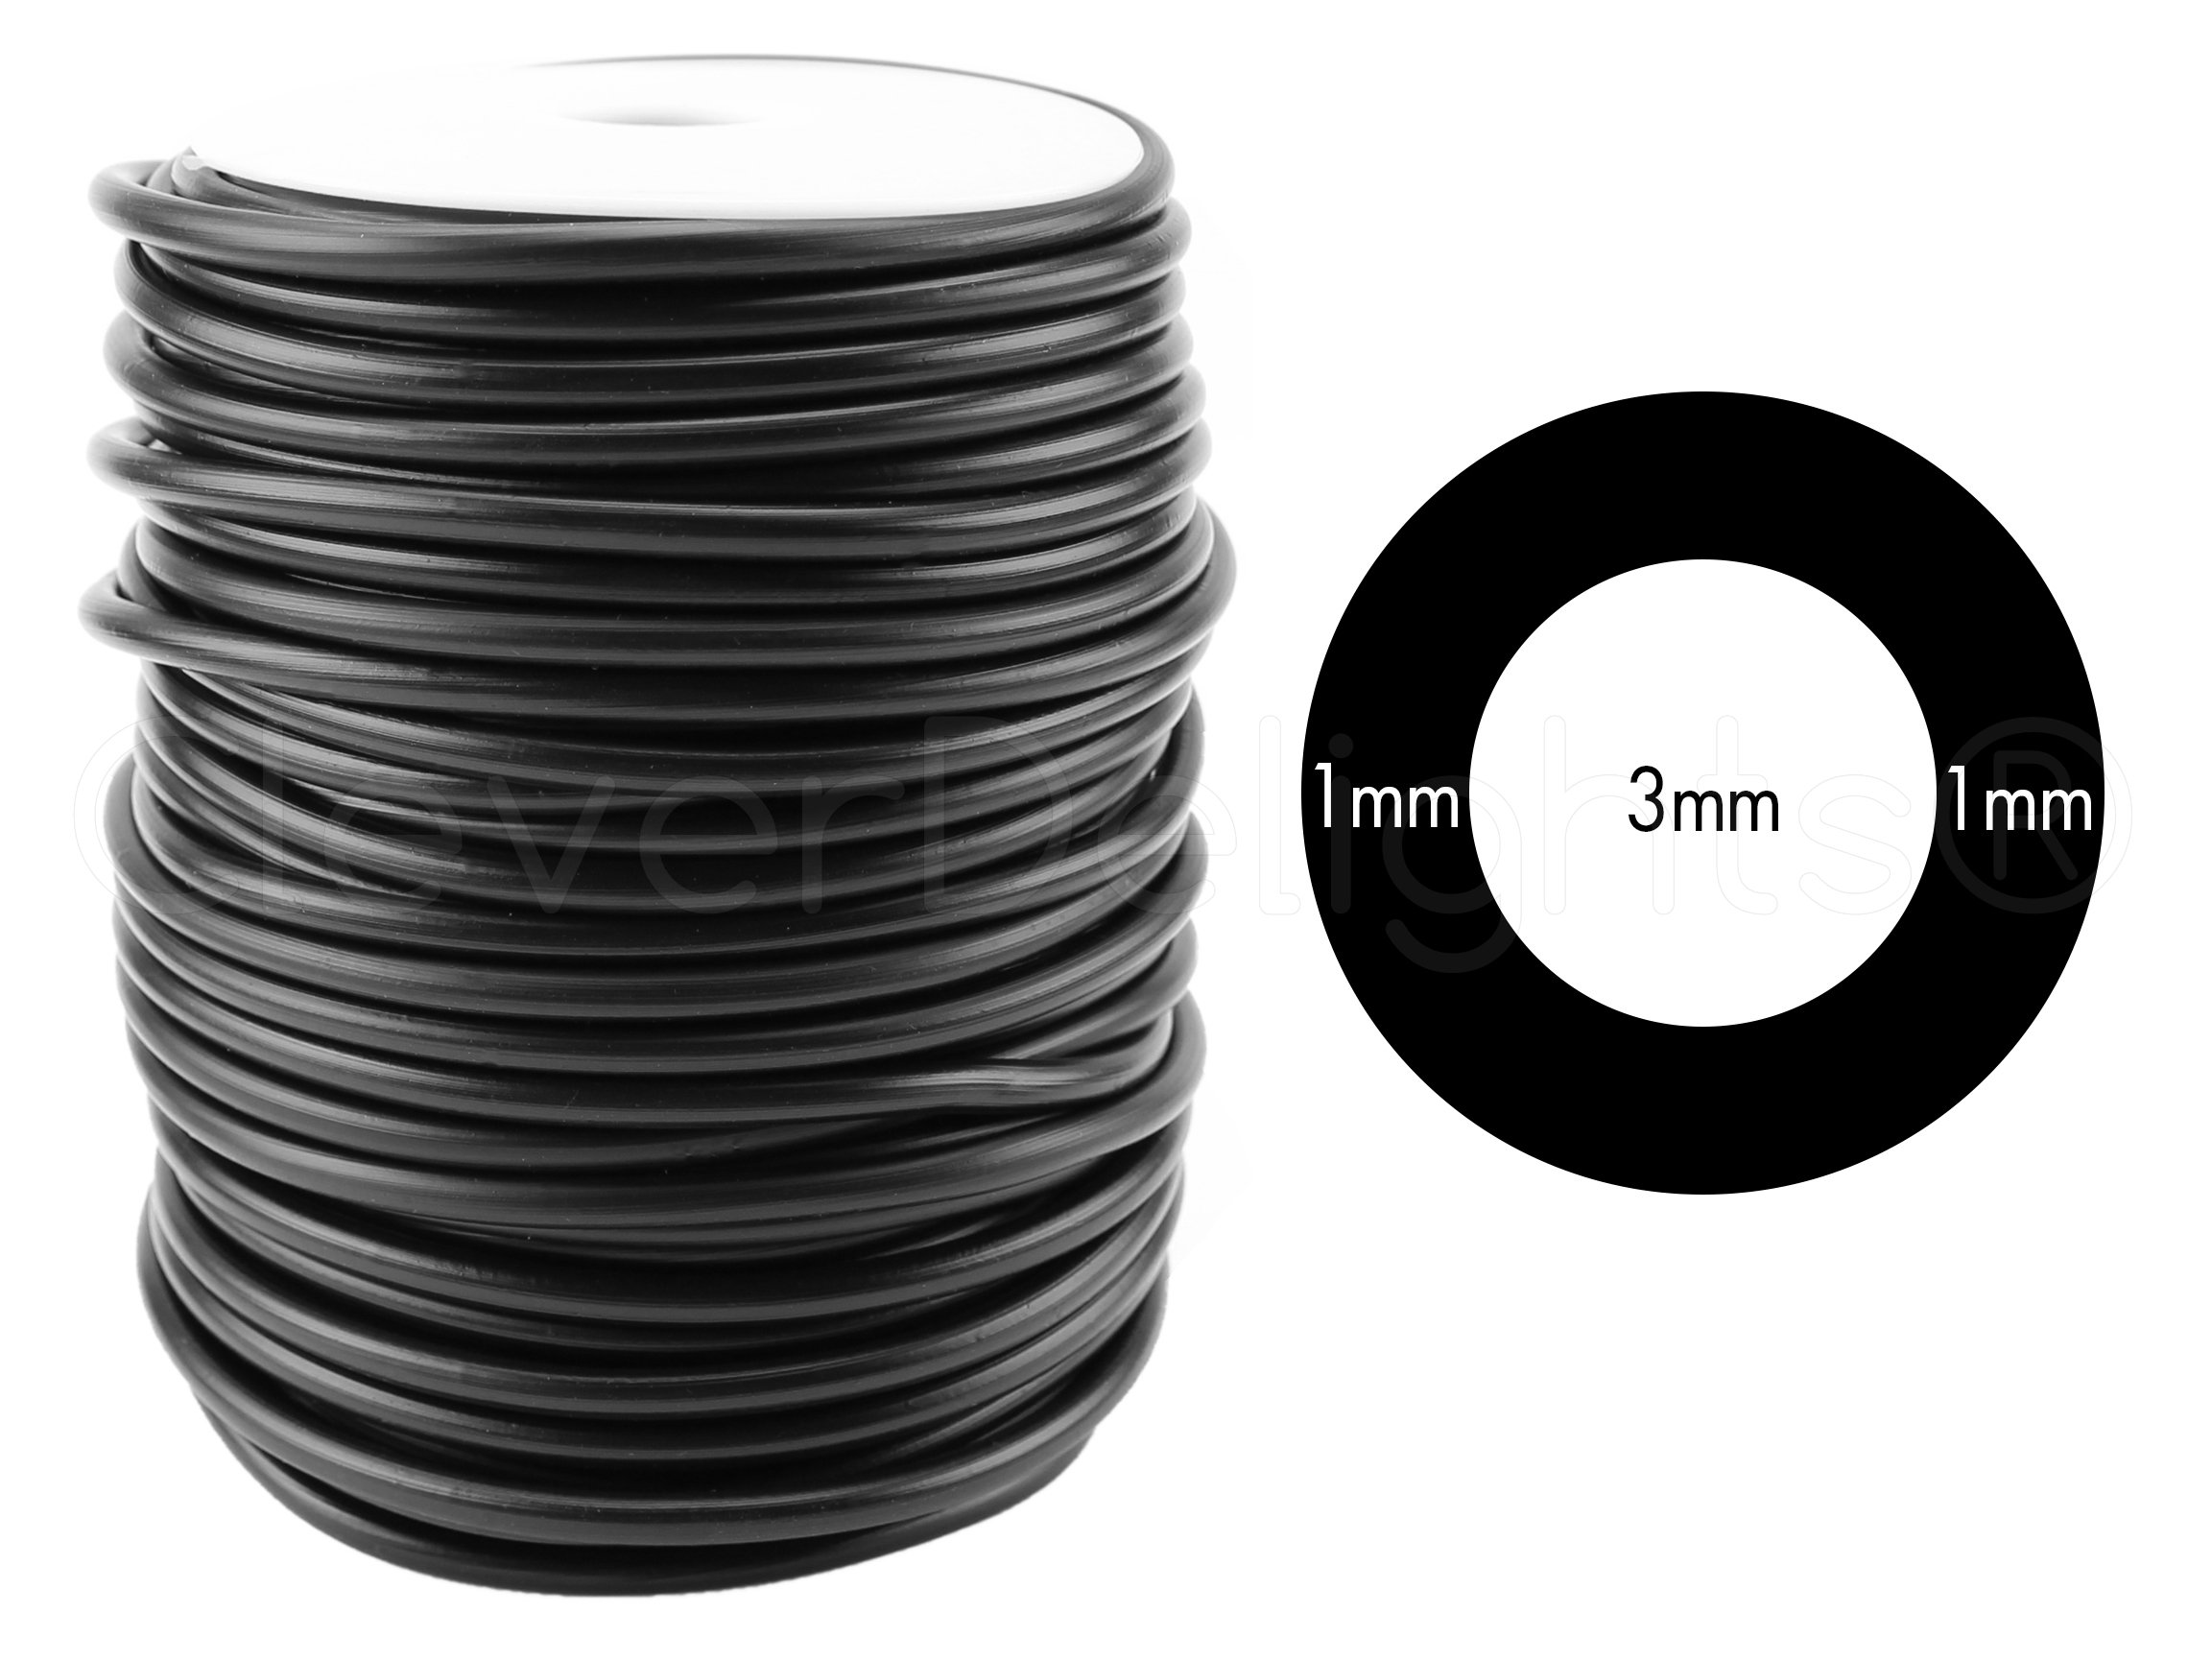 CleverDelights Black Hollow Rubber Tubing - 150 Feet - 5mm Diameter Tube Cord - 3/16'' OD x 1/8'' ID by CleverDelights